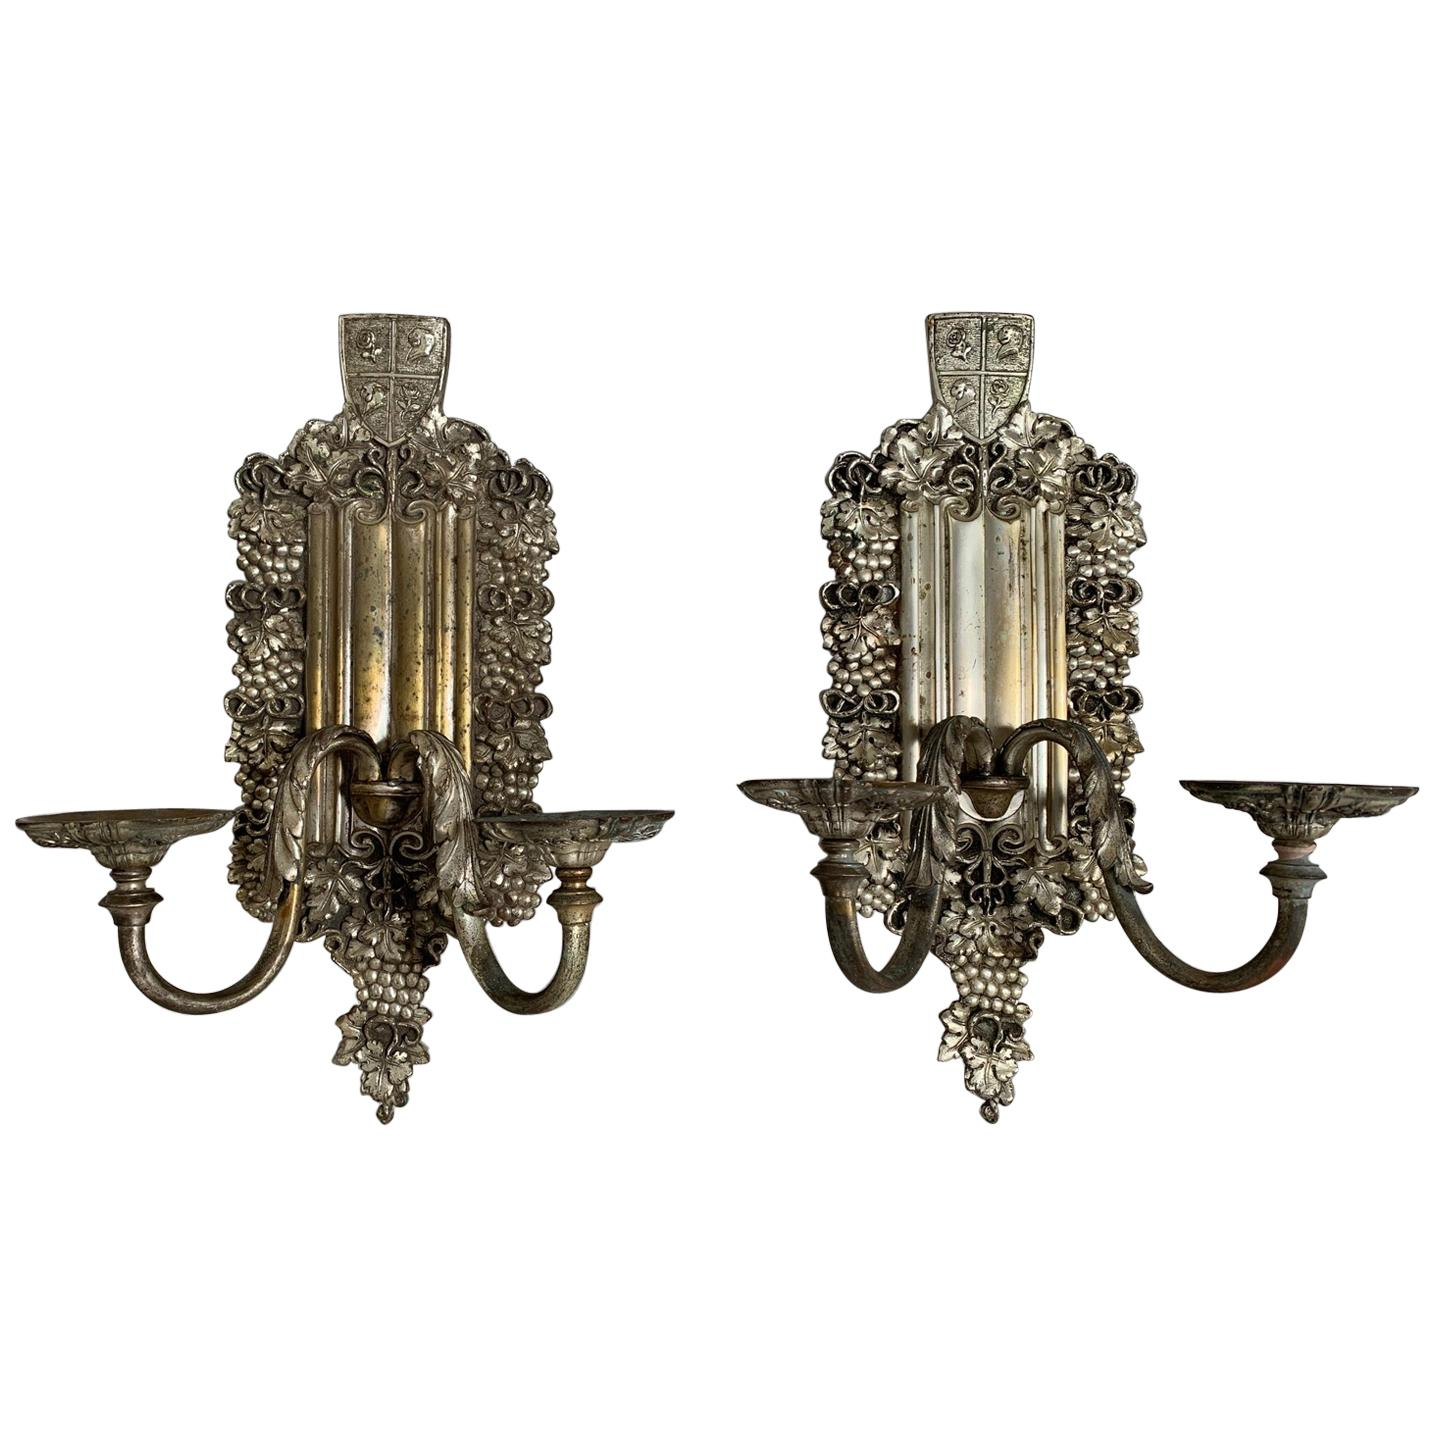 Pair of Silver Plated E. F. Caldwell Sconces